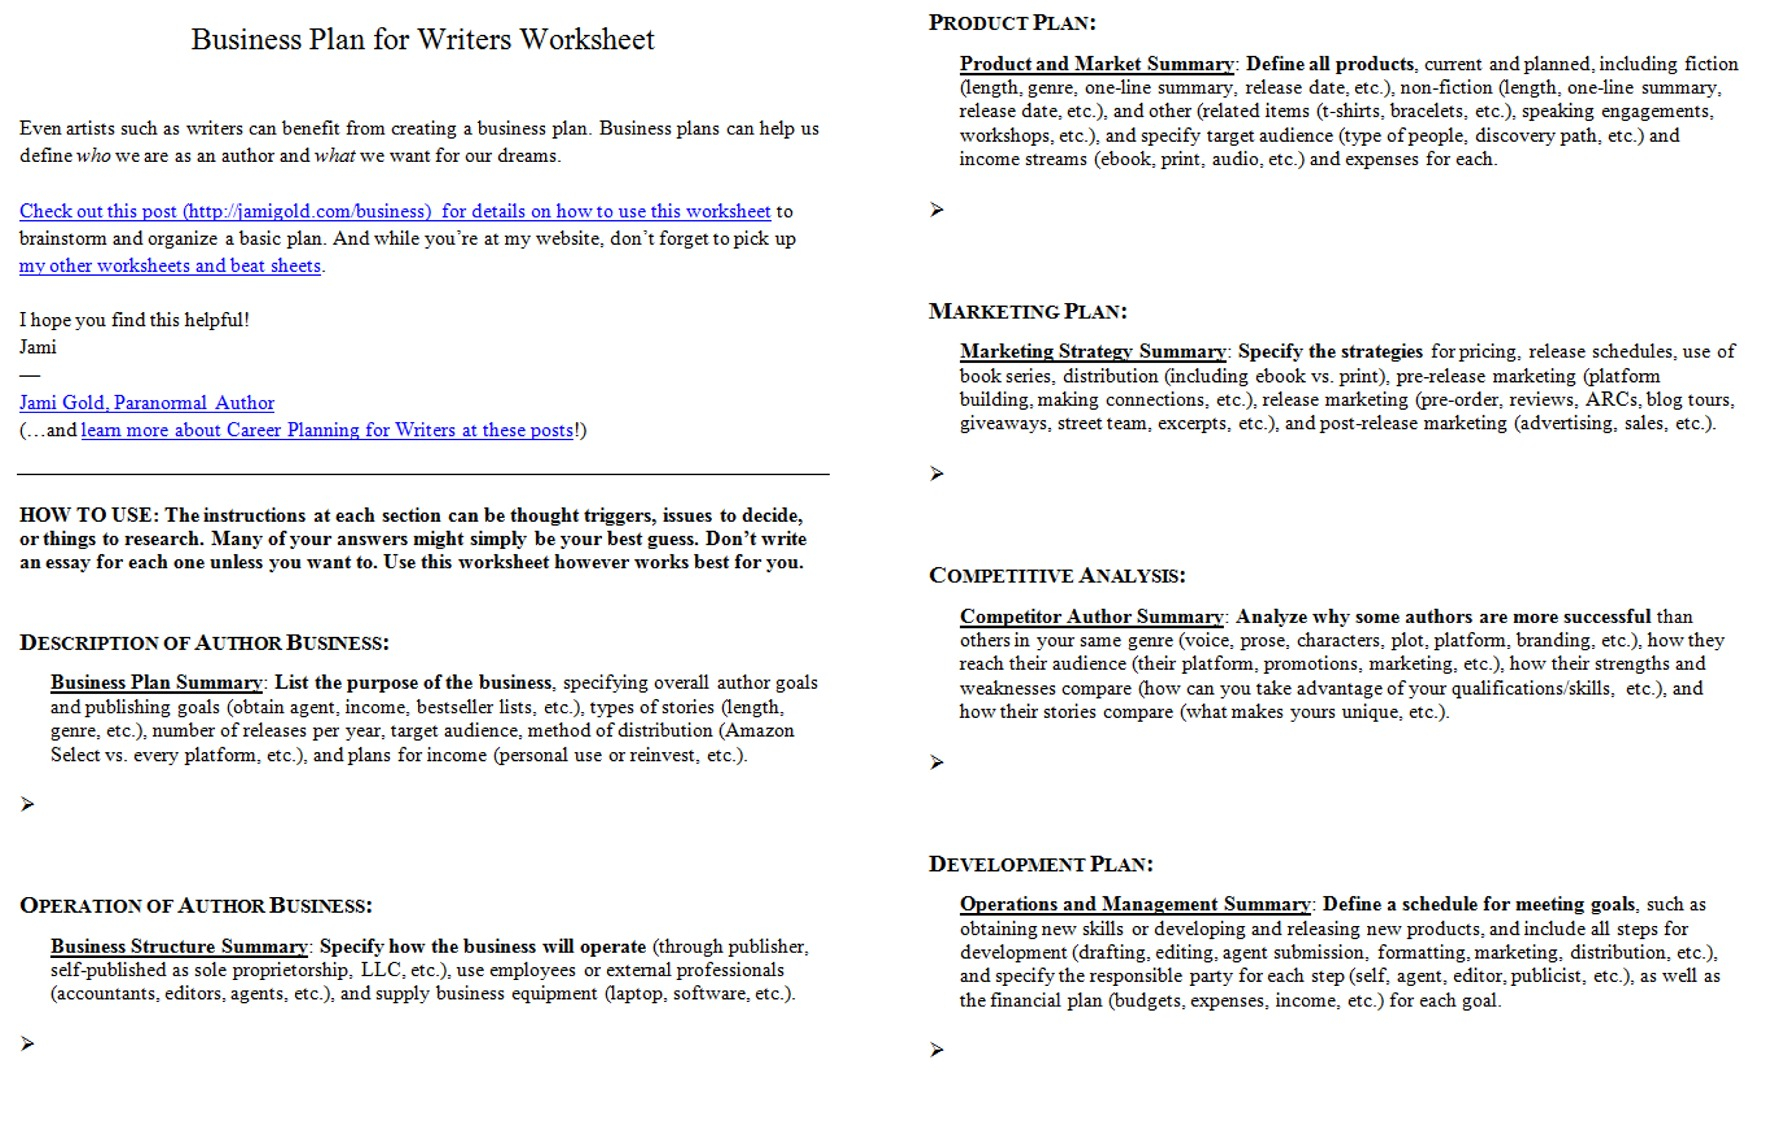 Weirdmailus  Pretty Worksheets For Writers  Jami Gold Paranormal Author With Inspiring Screen Shot Of Both Pages Of The Business Plan For Writers Worksheet With Attractive Comparing Fractions With Like Denominators Worksheet Also  Digit Subtraction With Regrouping Worksheet In Addition Earned Income Credit Eic Worksheet And Science Worksheets For Preschoolers As Well As First Line Therapy Menu Plan Worksheet Additionally Perspective Worksheet From Jamigoldcom With Weirdmailus  Inspiring Worksheets For Writers  Jami Gold Paranormal Author With Attractive Screen Shot Of Both Pages Of The Business Plan For Writers Worksheet And Pretty Comparing Fractions With Like Denominators Worksheet Also  Digit Subtraction With Regrouping Worksheet In Addition Earned Income Credit Eic Worksheet From Jamigoldcom